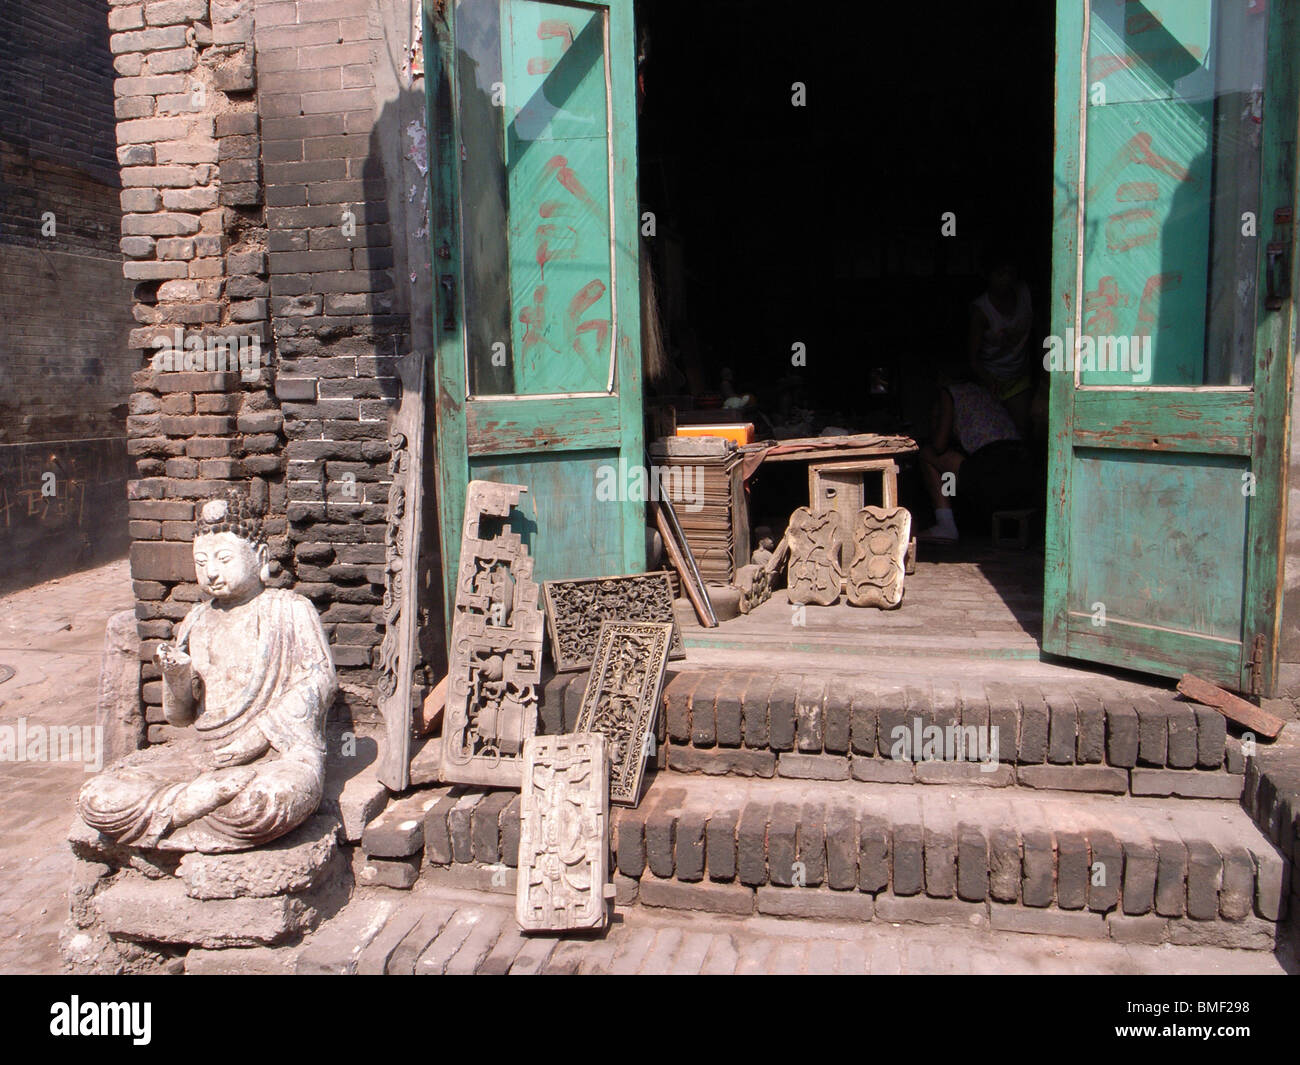 Statue of Buddha in front of the antique store, Pingyao, Shanxi Province, China - Stock Image